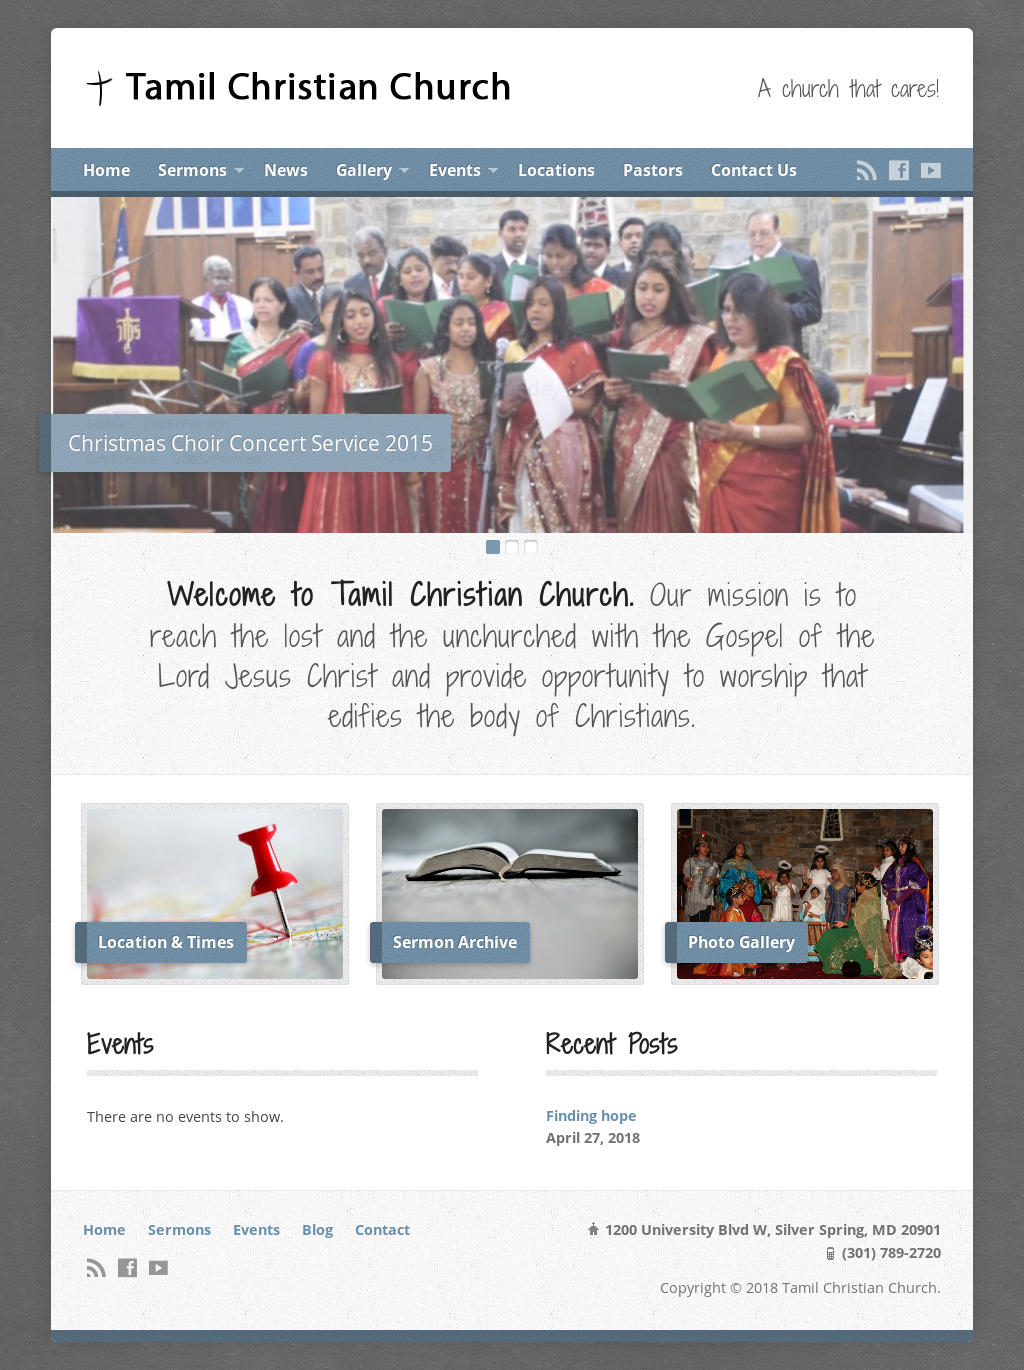 Tamil Christian Church Competitors, Revenue and Employees - Owler